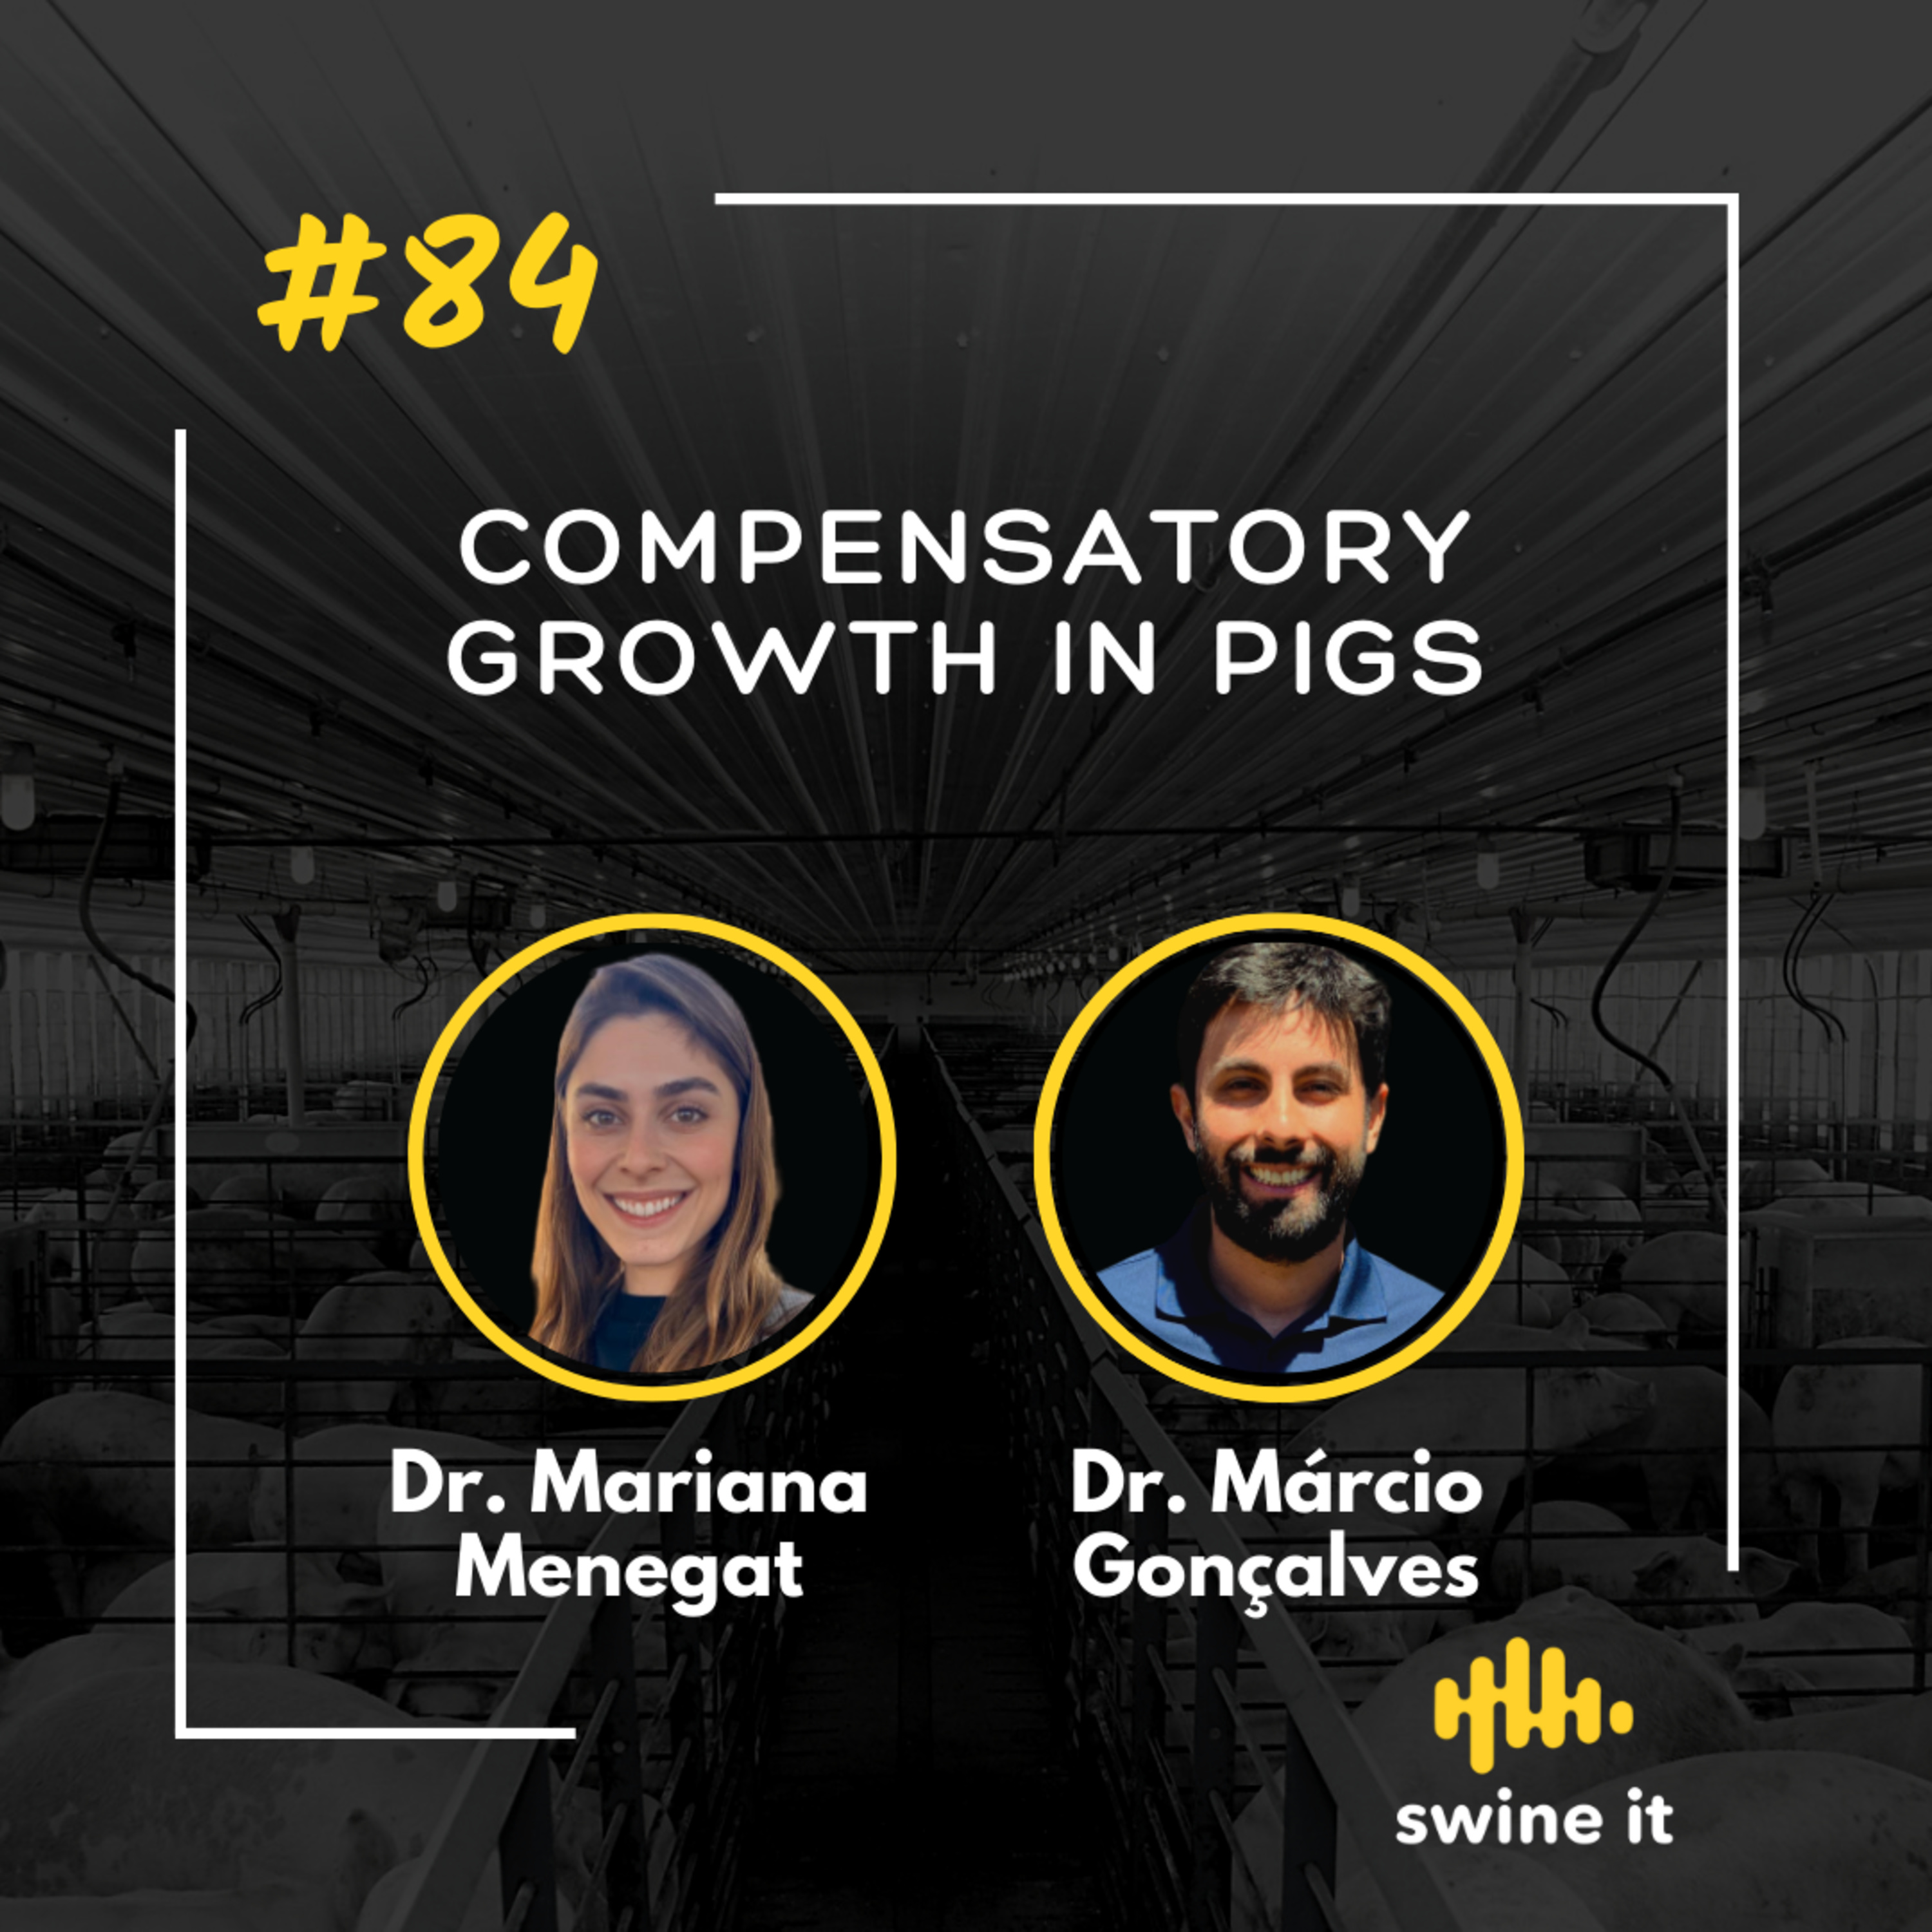 Compensatory growth in pigs - Dr. Mariana Menegat